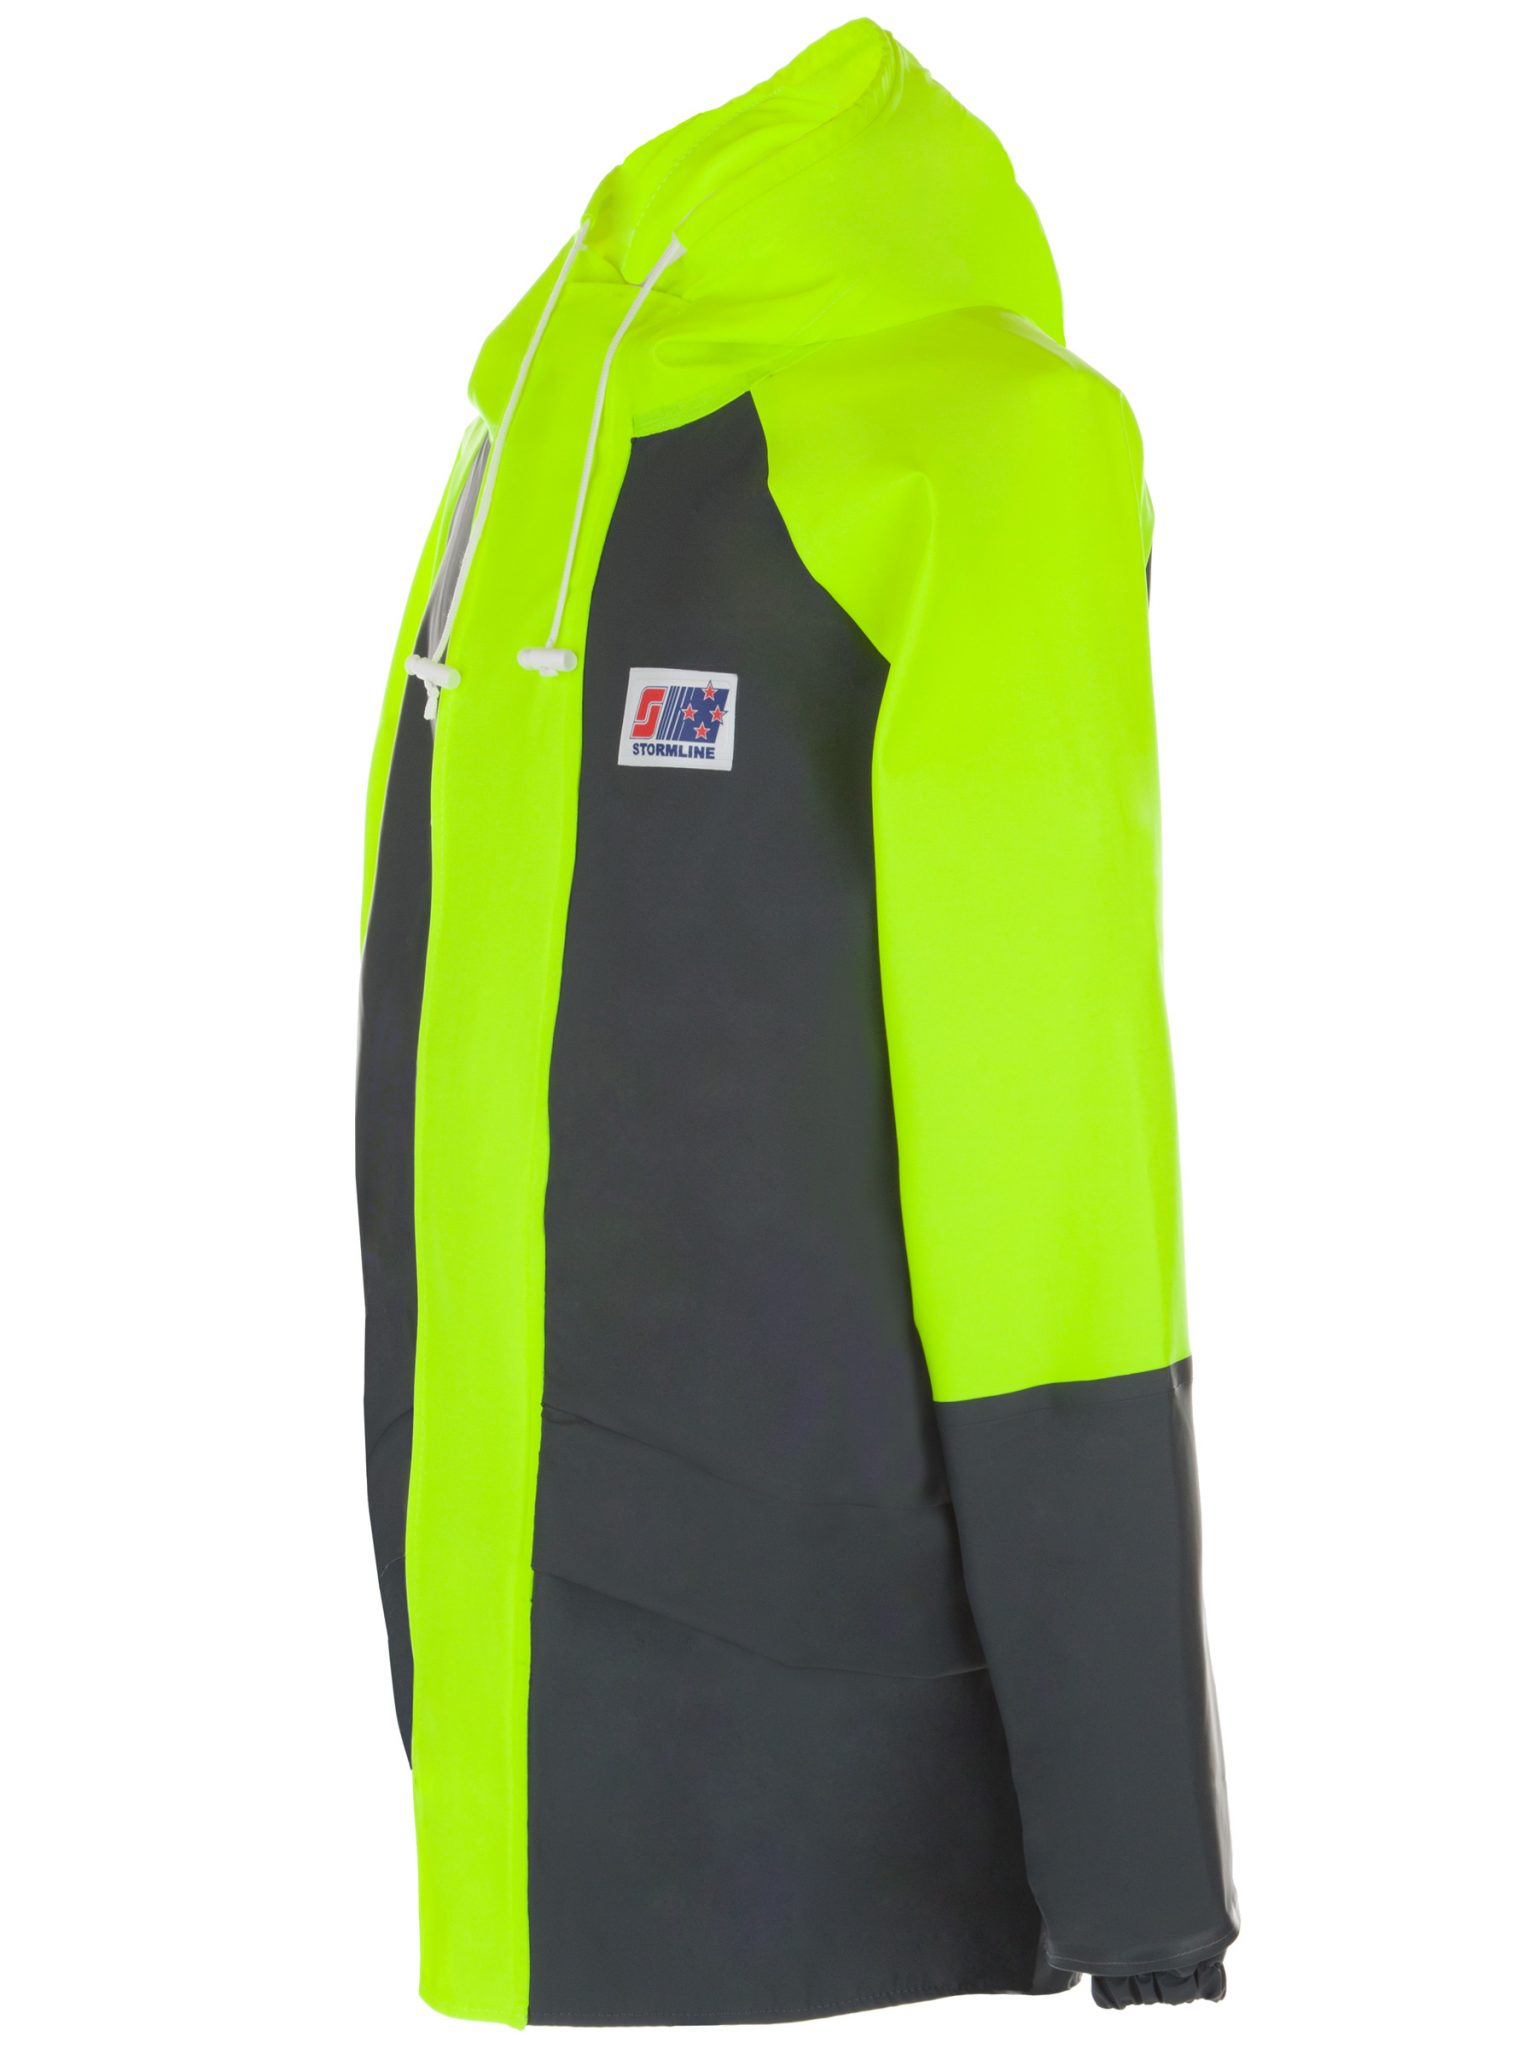 Stormtex-Air 203 light weight wet weather gear 3/4